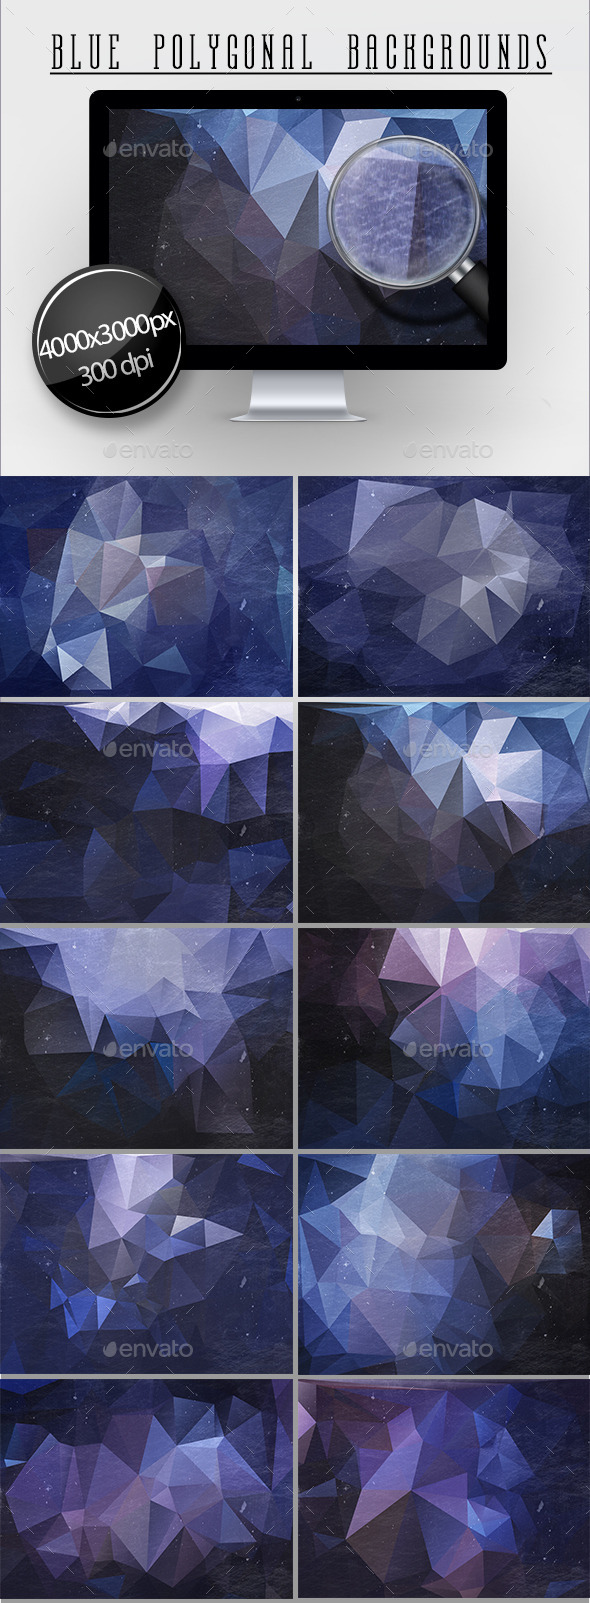 10 Blue Polygonal Backgrounds - Abstract Backgrounds